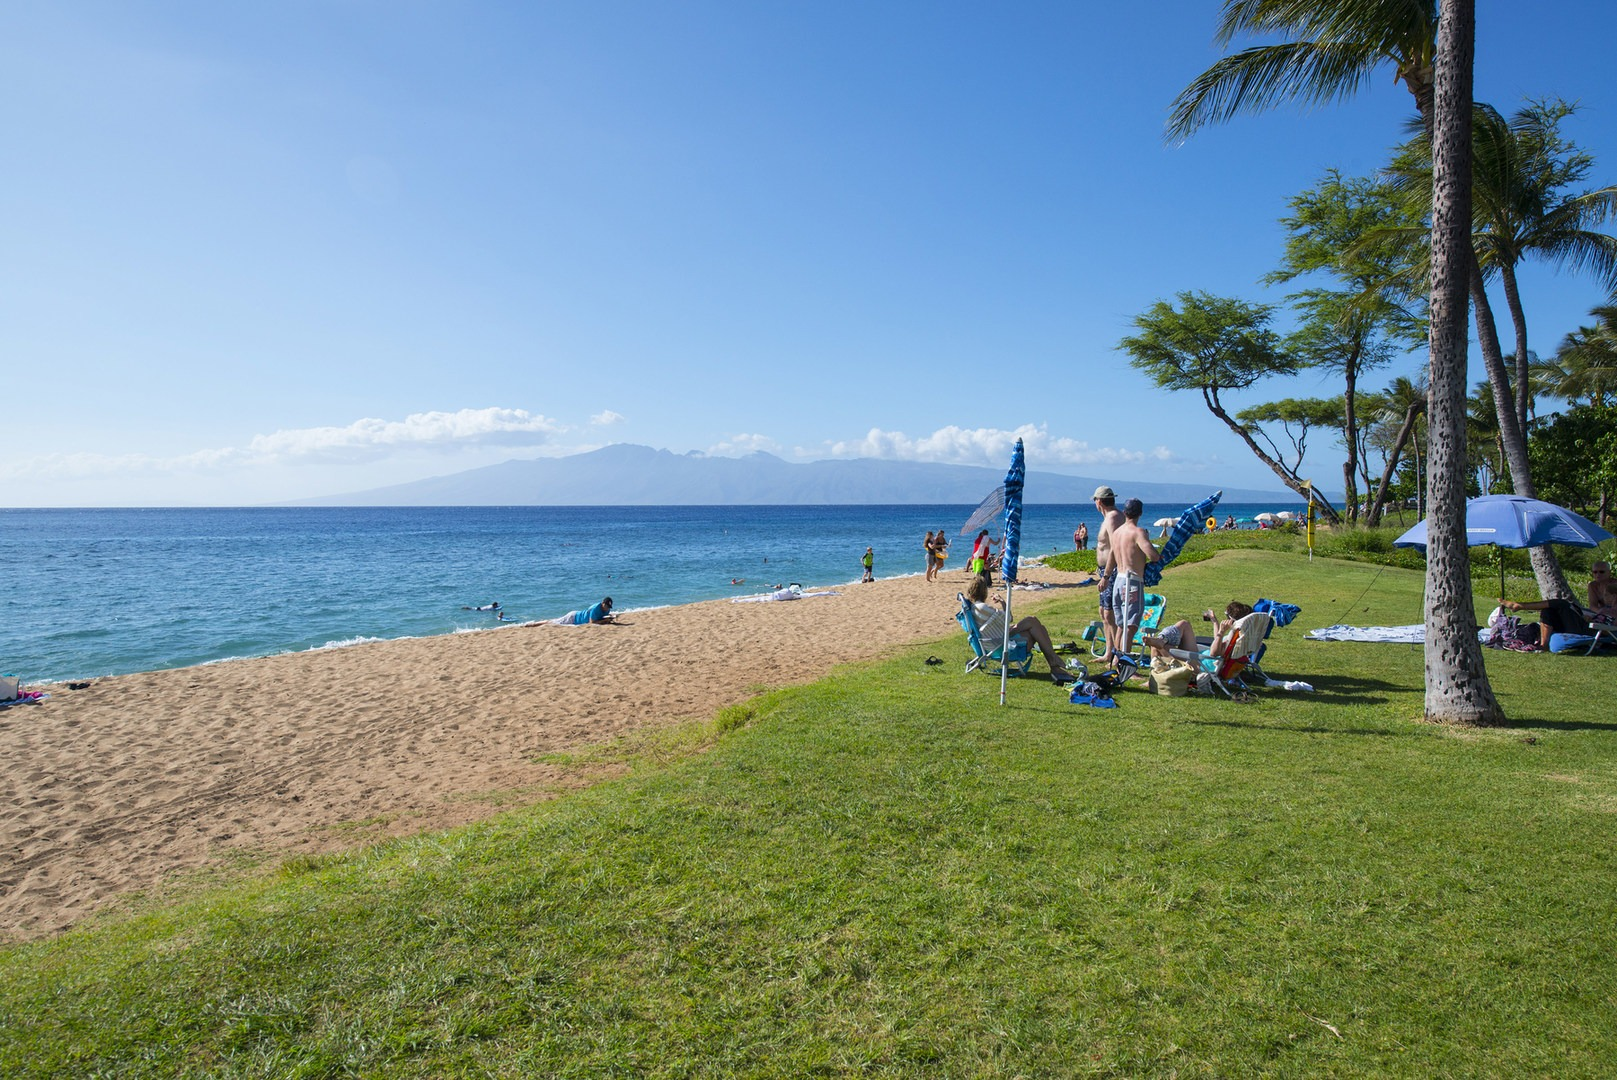 North Ka Anapali Beach Airport At Kahekili Park